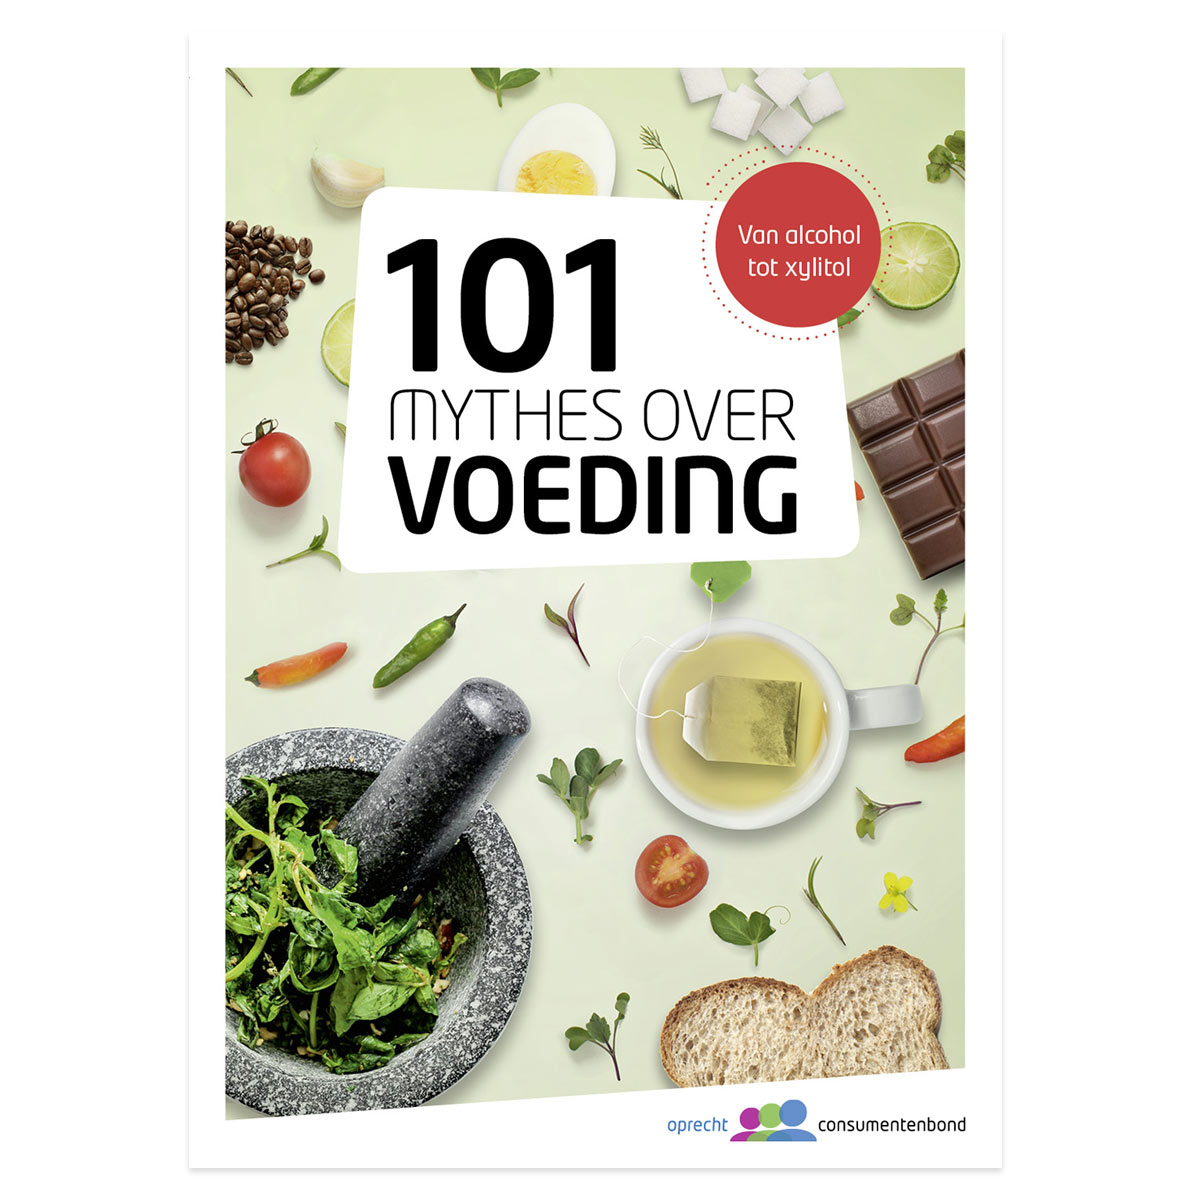 101-mythes-over-voeding